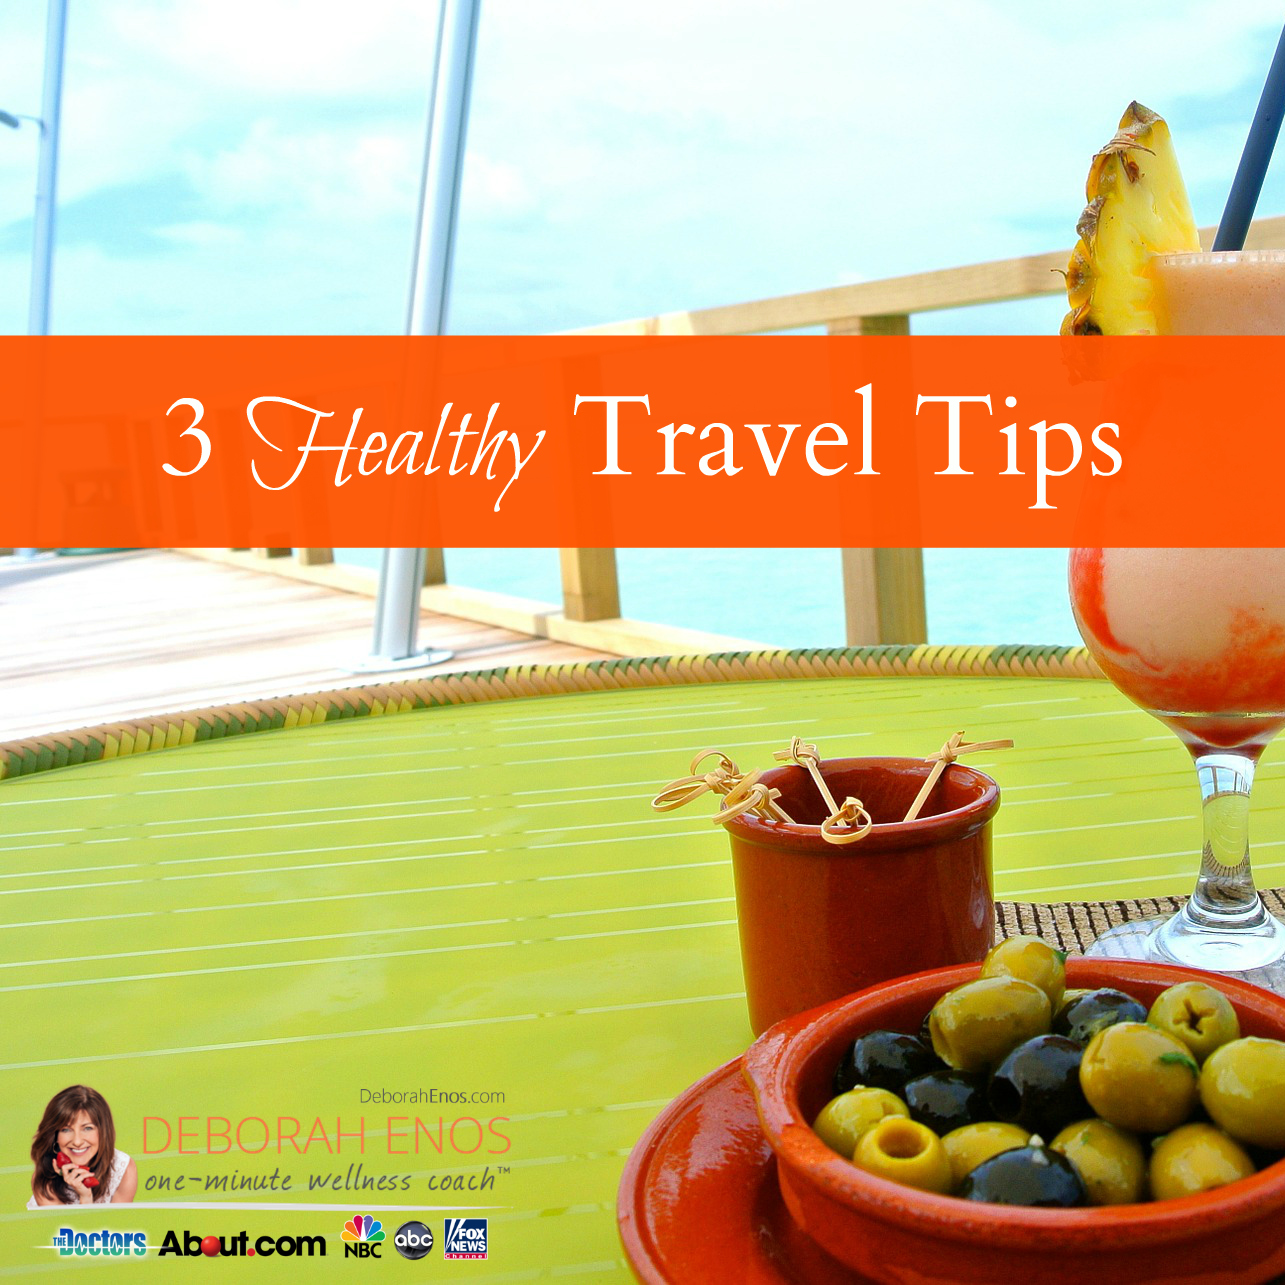 Deborah Enos 3 Healthy Travel Tips